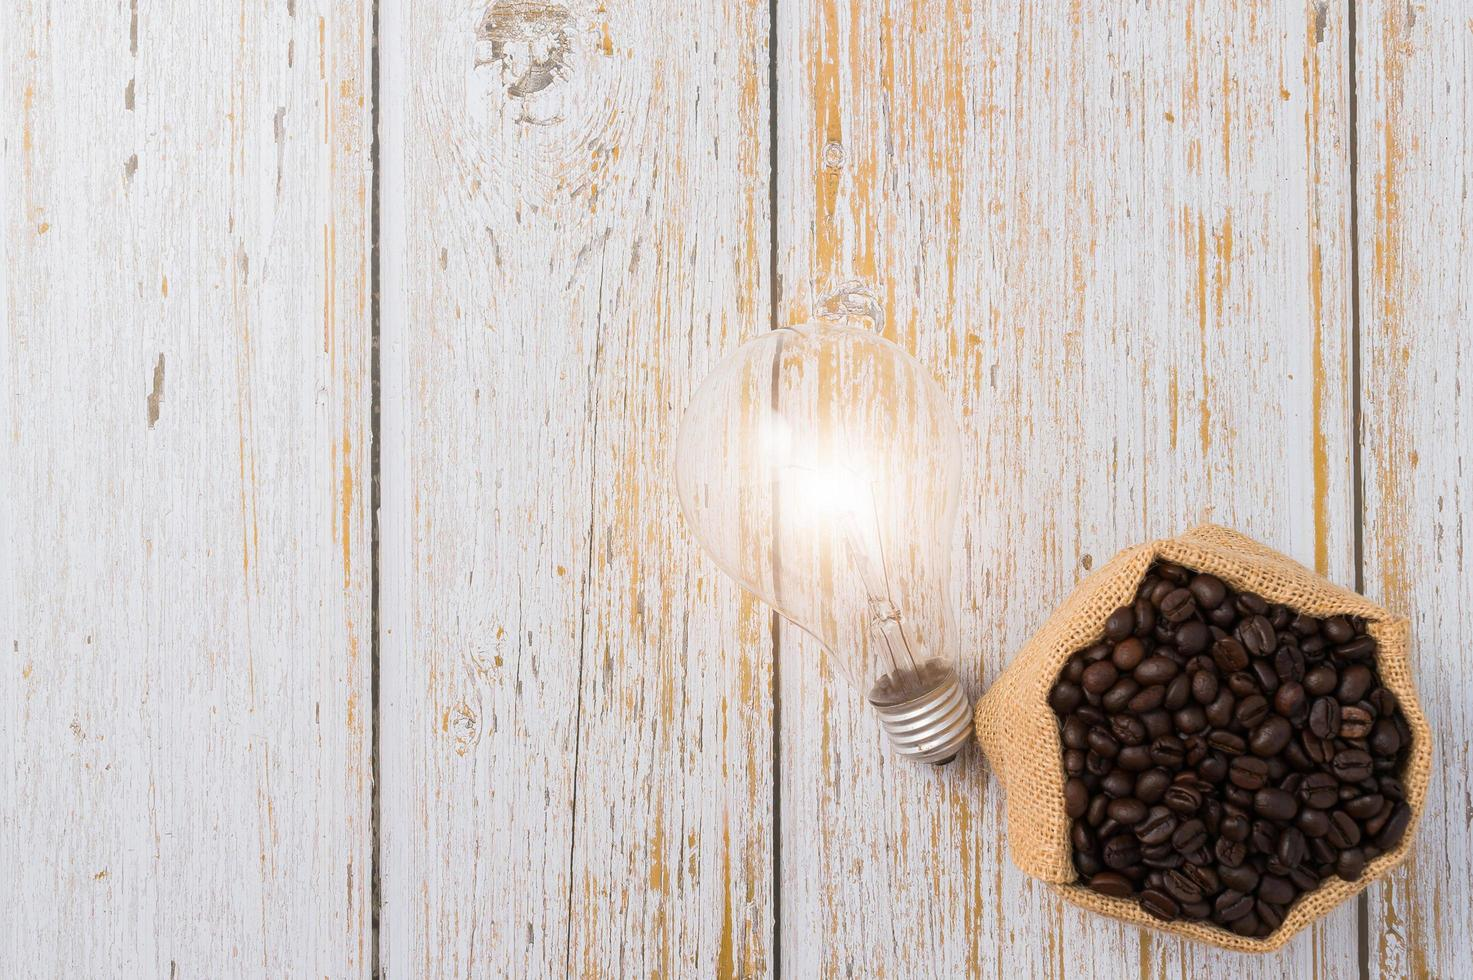 Coffee beans and a light bulb emitting energy on a wooden background photo